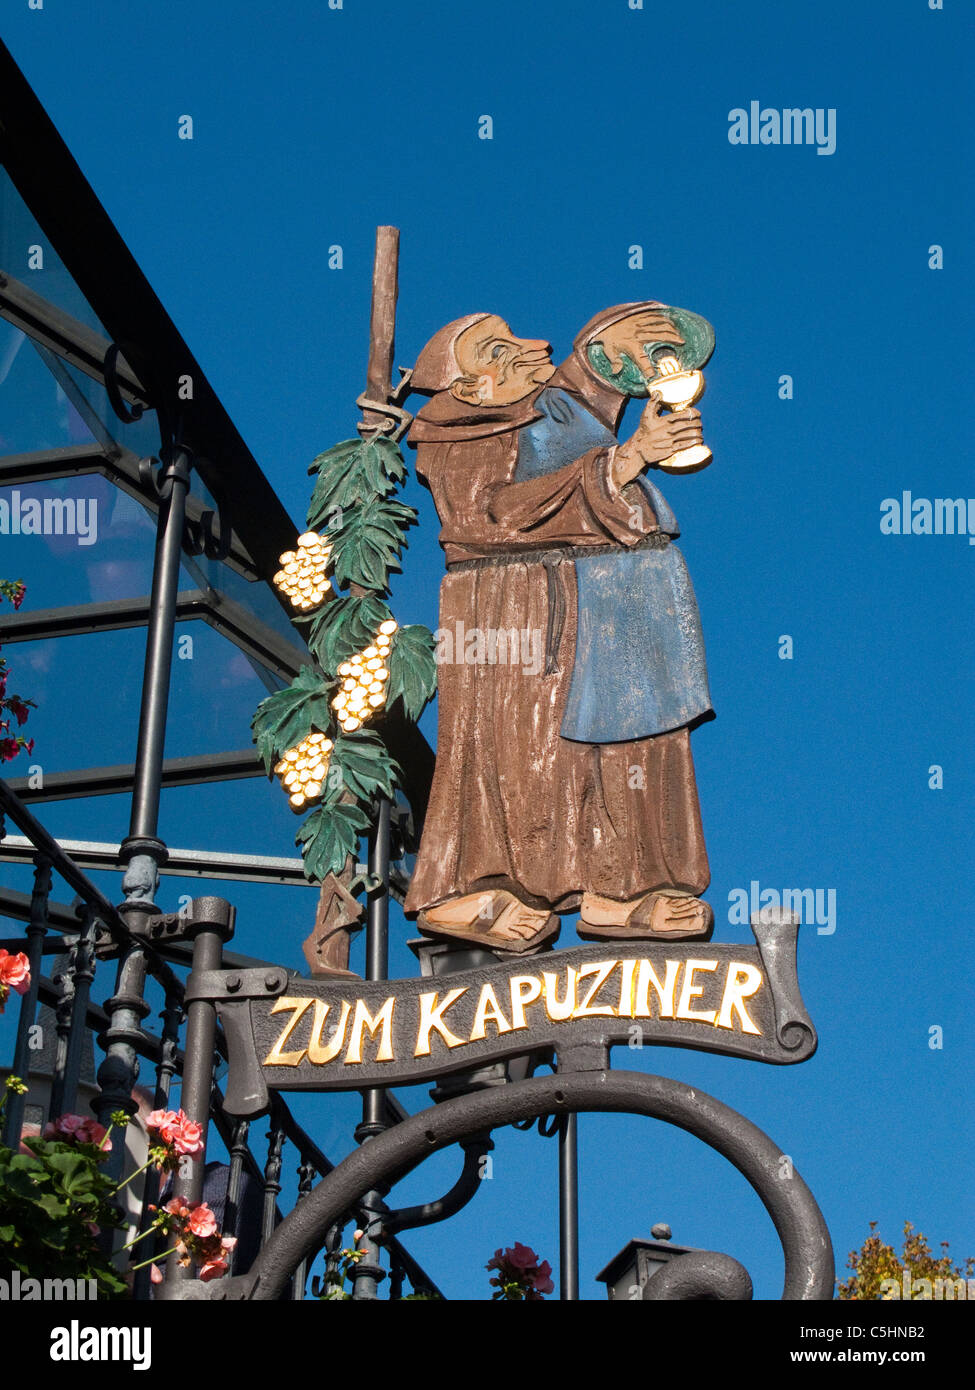 Wirtshausschild, Gaststaette an der Moselpromenade, Cochem, Mosel, Tavern sign, Kapuziner, old town, Moselle - Stock Image